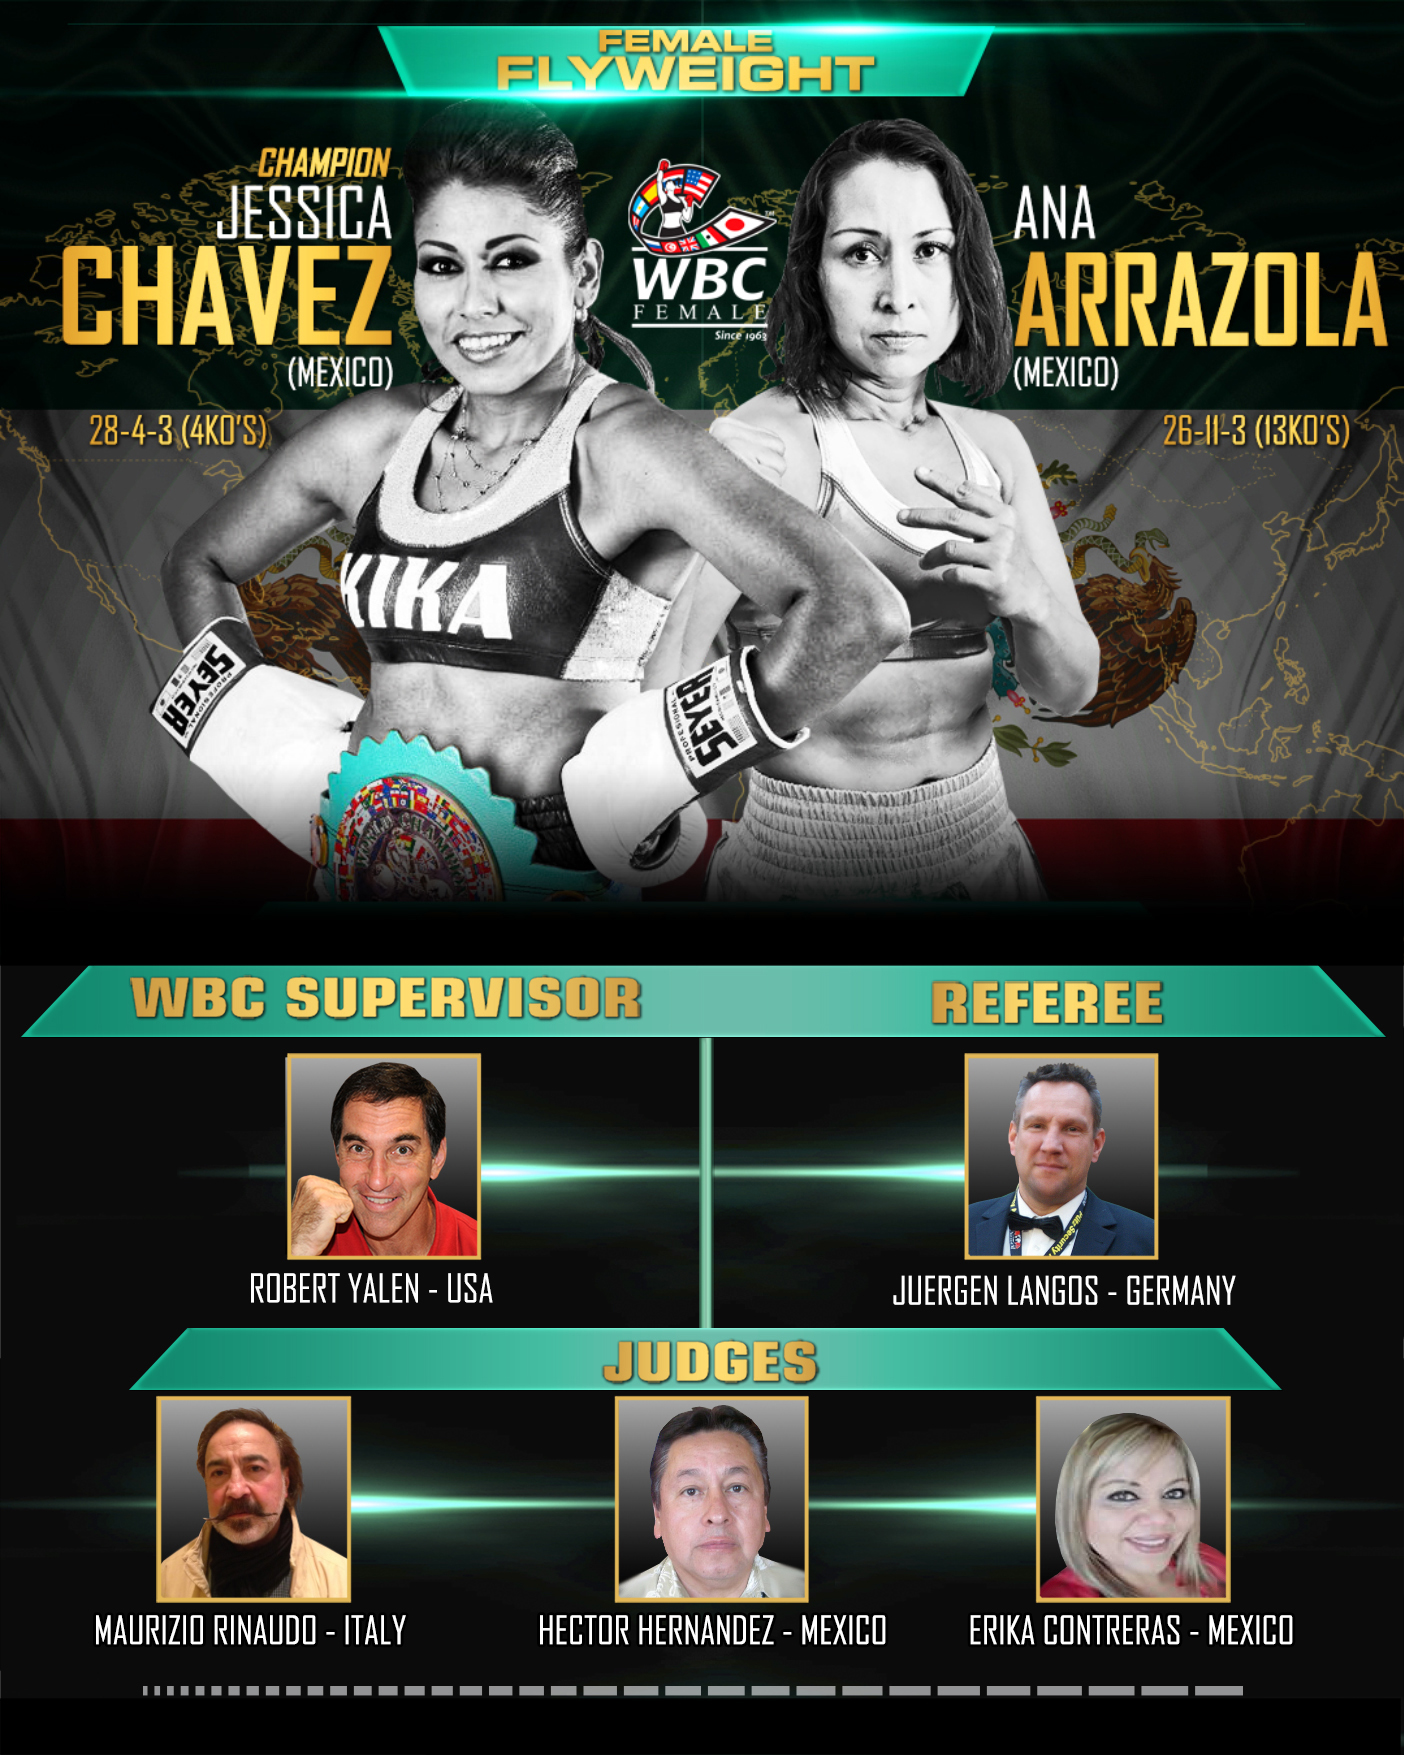 kika-chavez-vs-ana-arrazola-RING-OFFICIALS